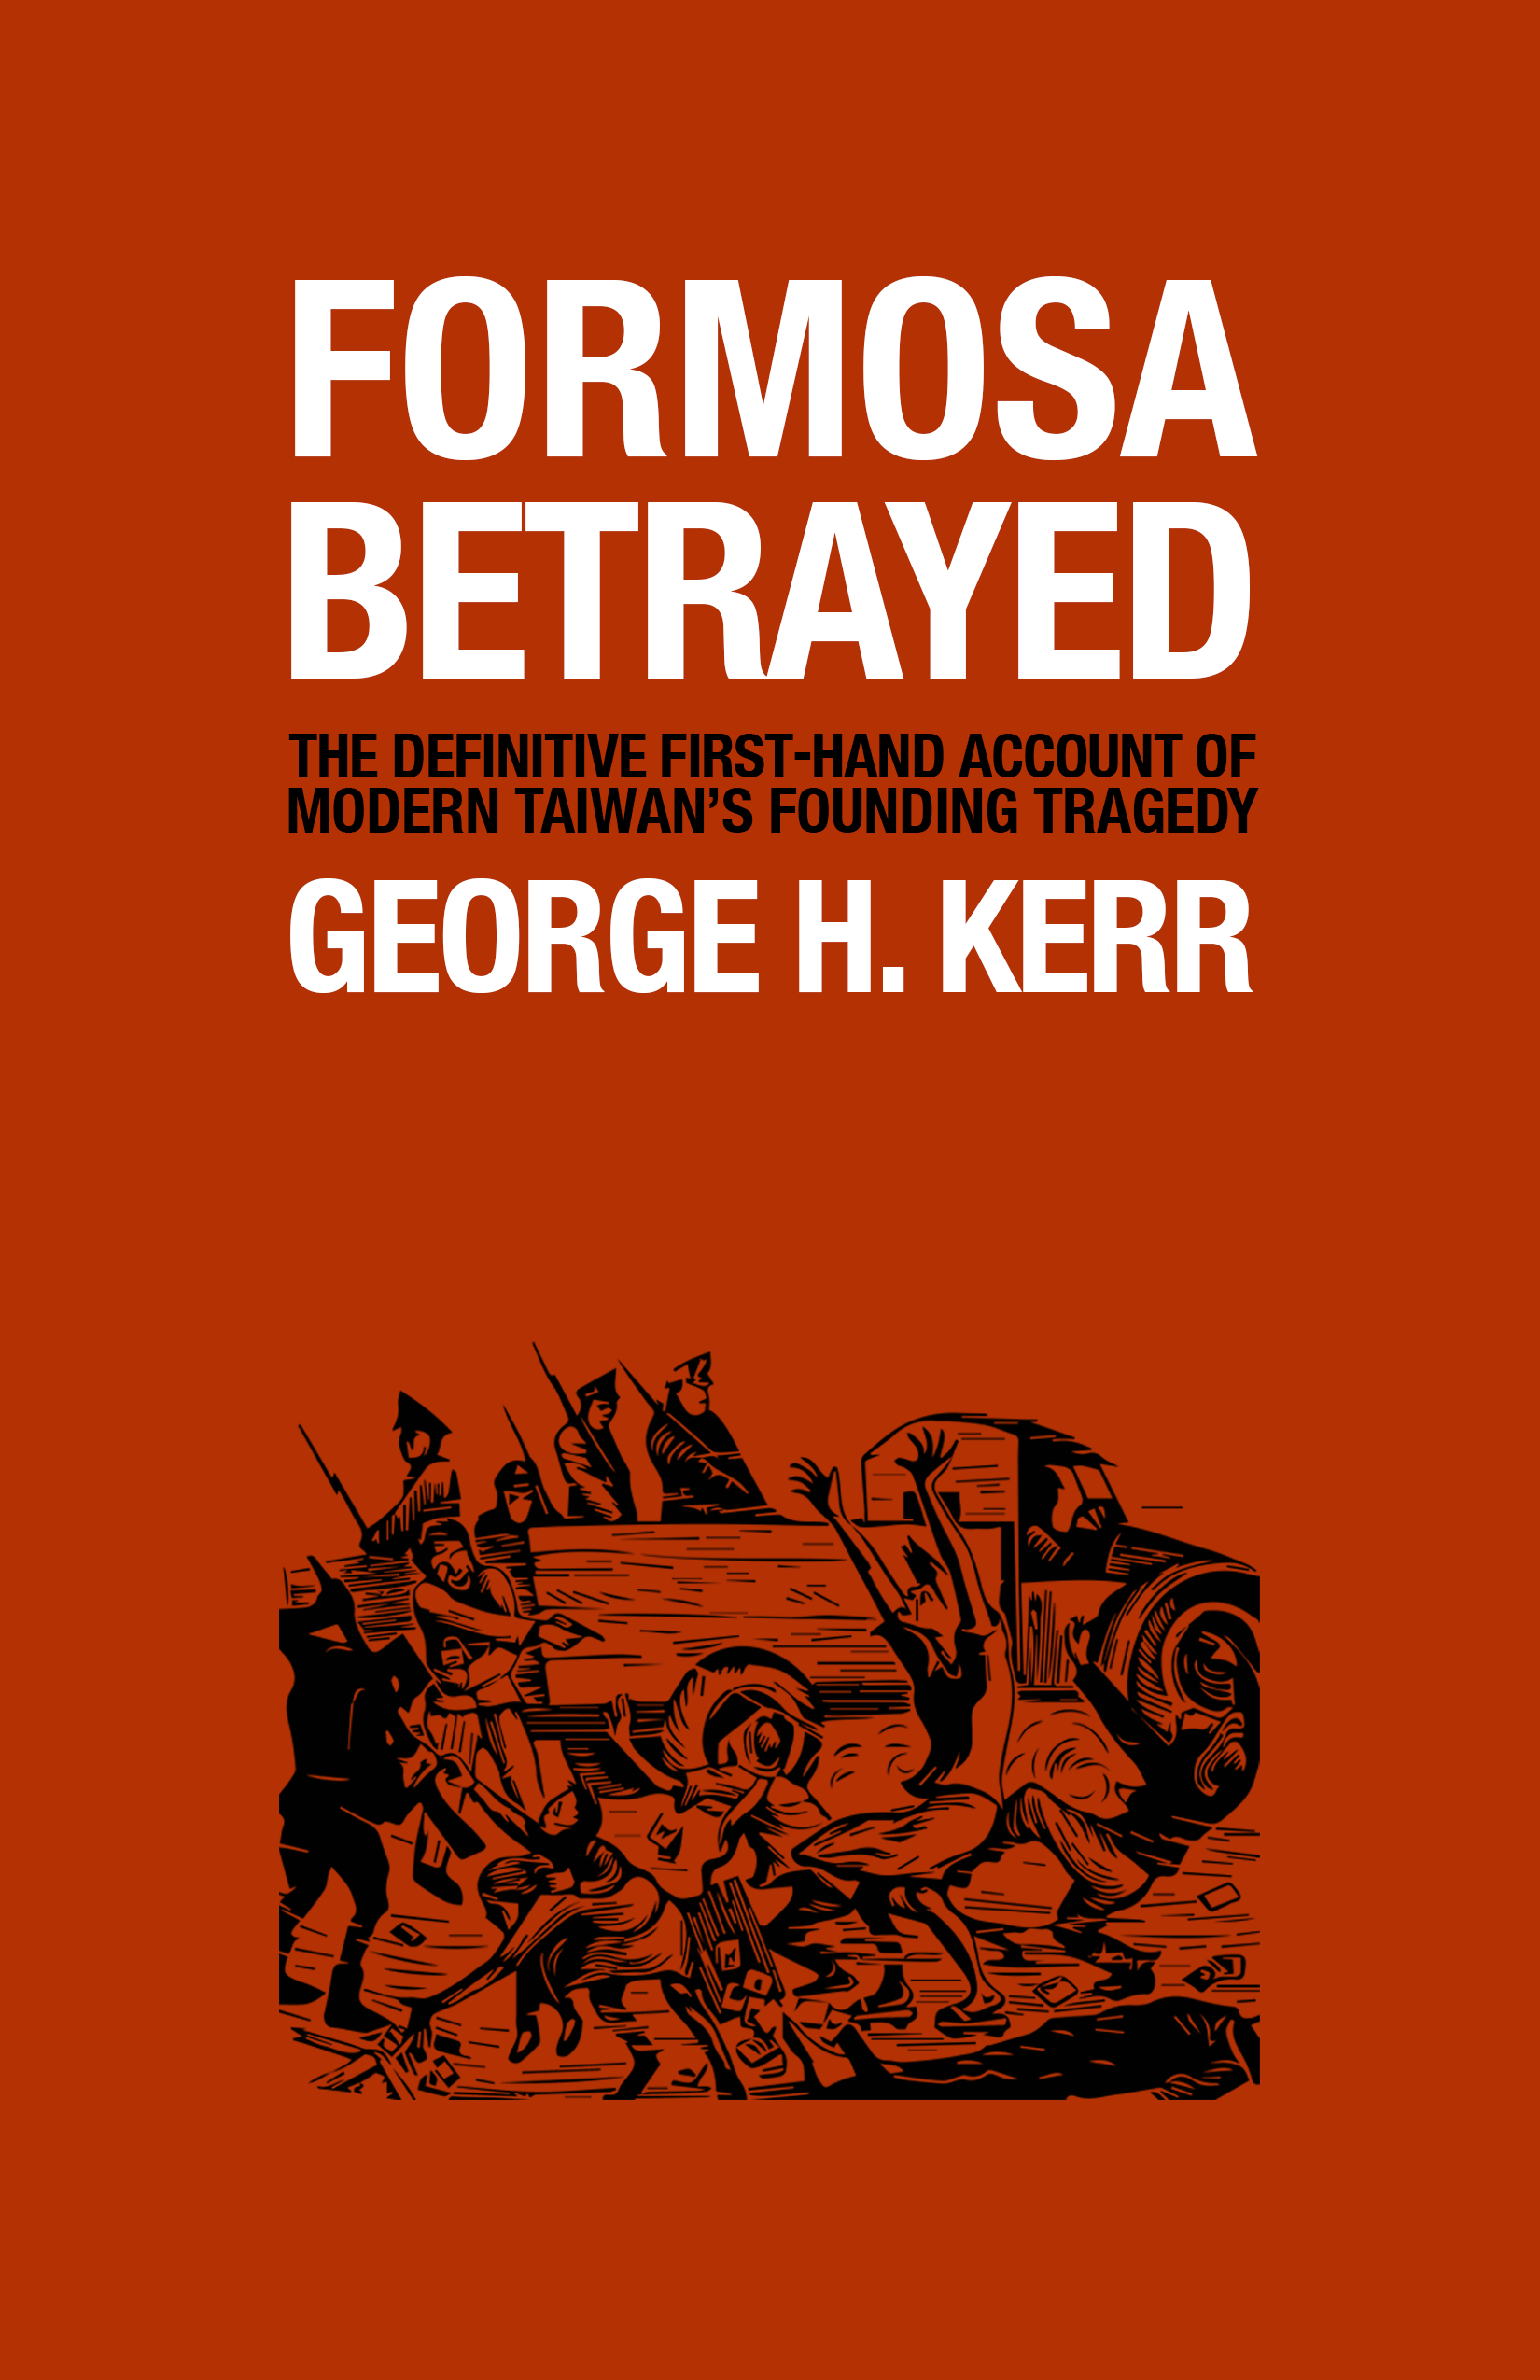 The cover of Formosa Betrayed, by George H. Kerr